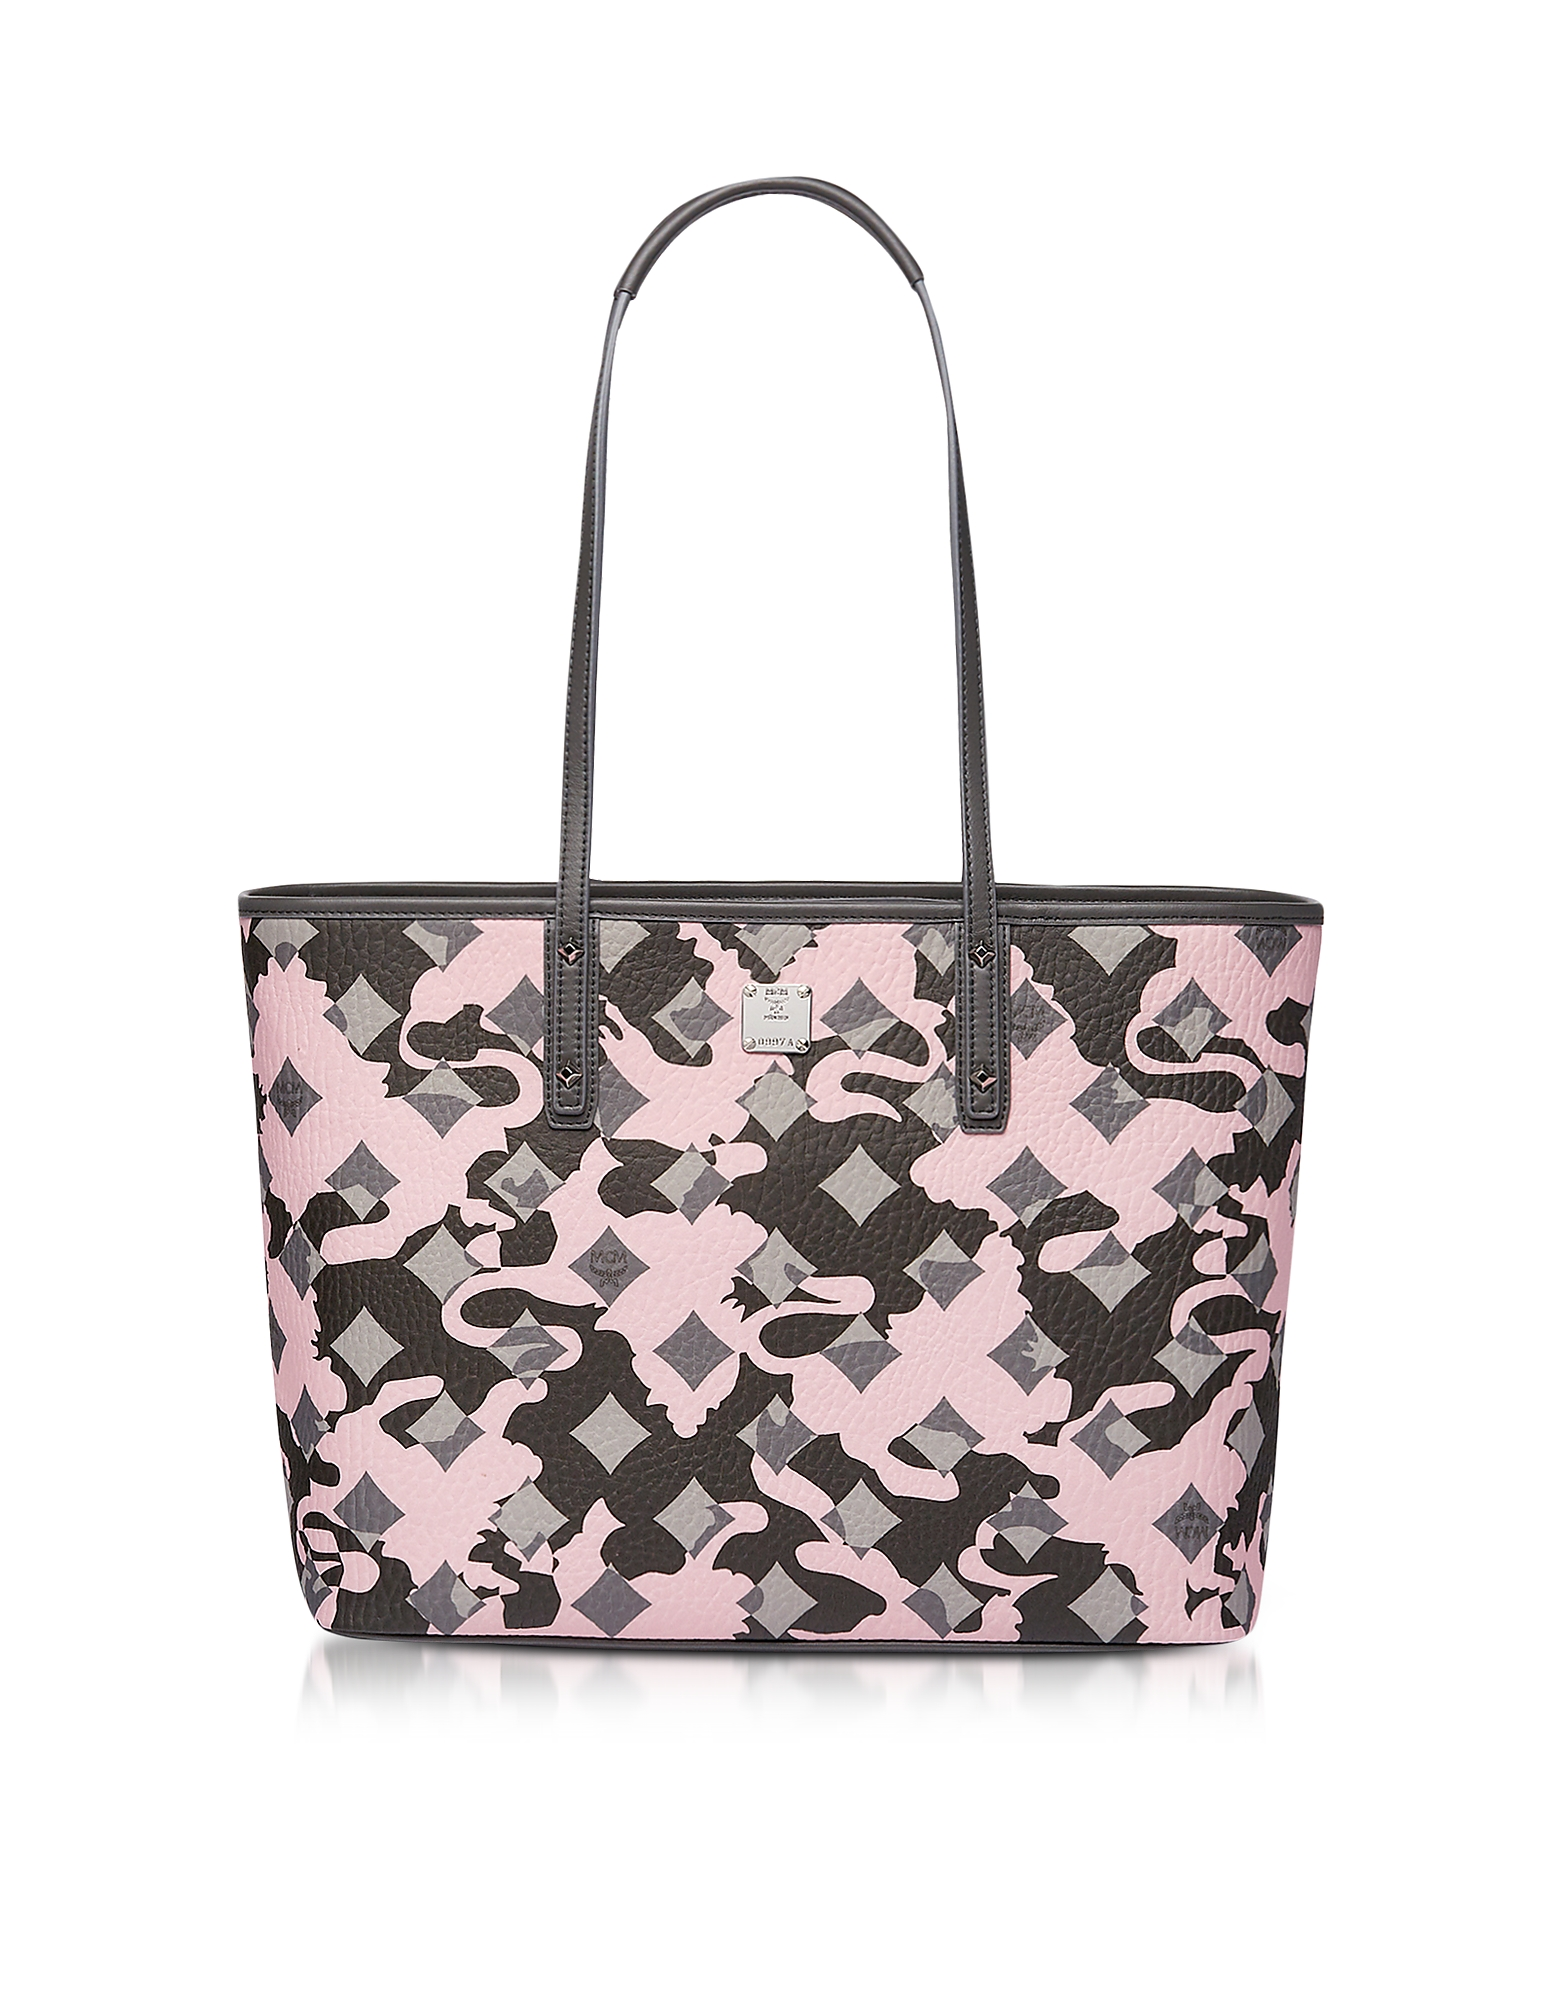 MCM Handbags, Medium Pink Blush Camo Print Top Zip Shopping Bag